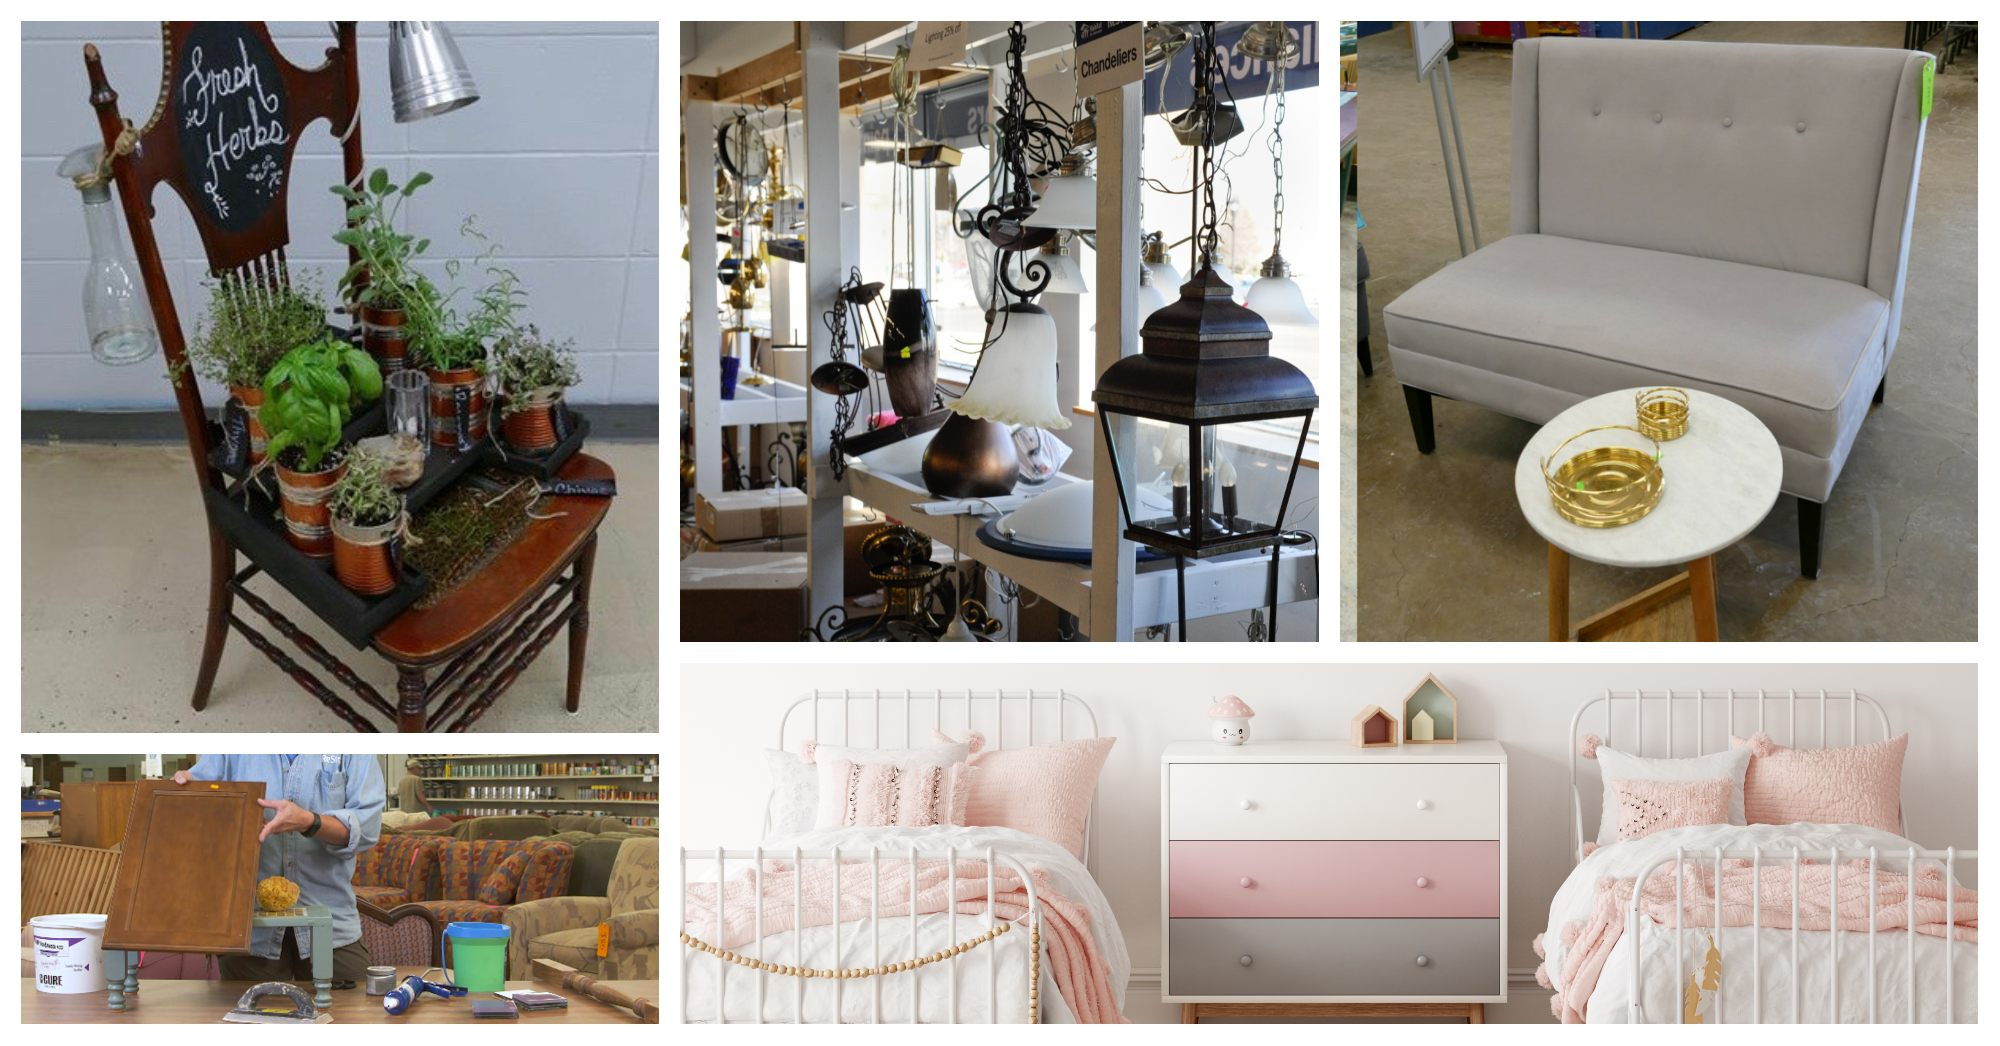 7 Easy Makeover Ideas to Spruce Up Any Space - lamp, remodel, diy, bedroom, kitchen, ideas